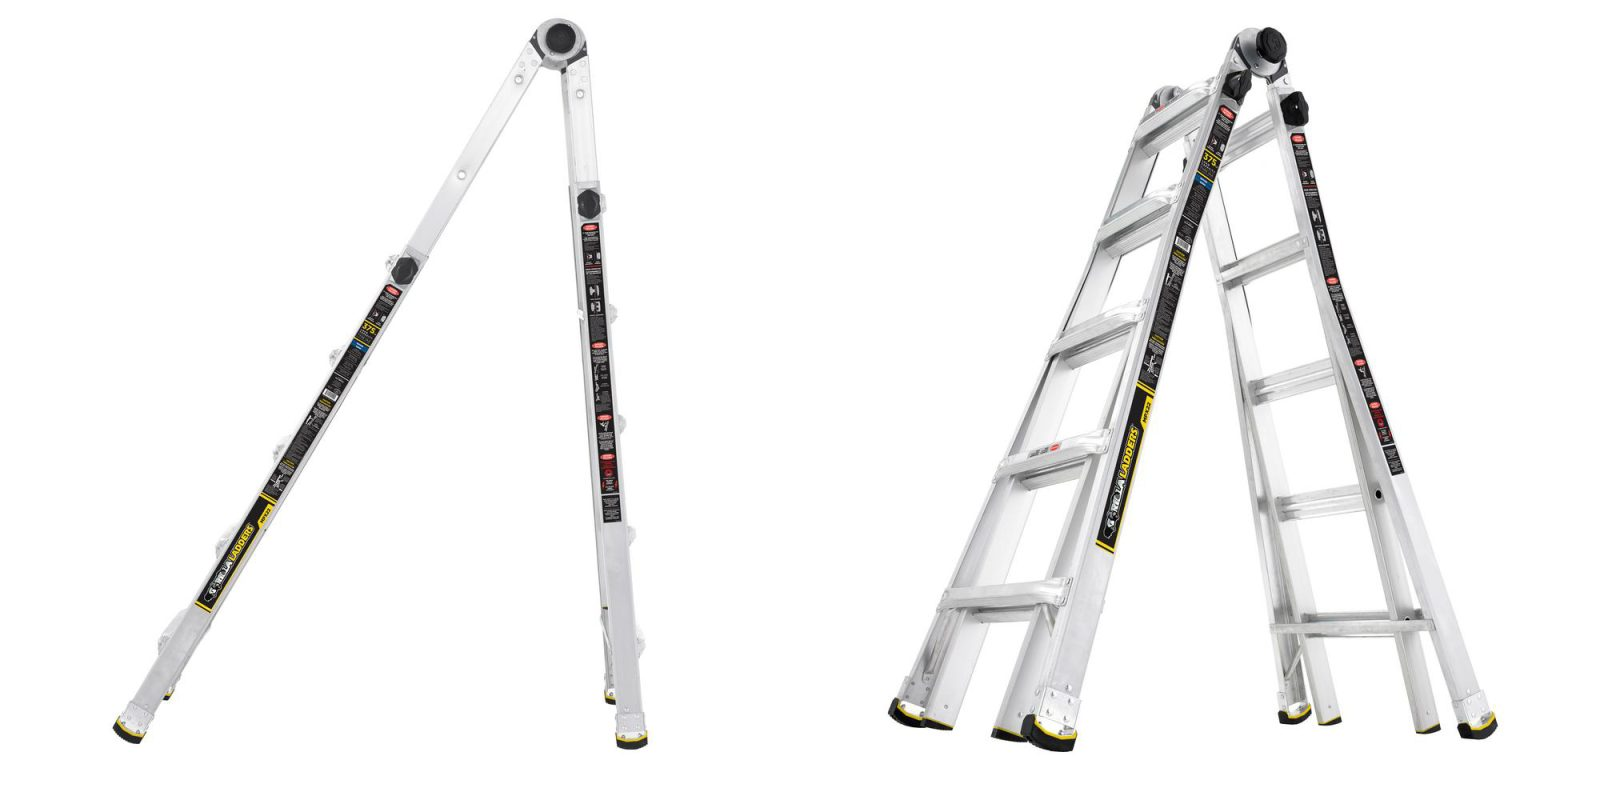 Ladders For Sale >> Gorilla Ladders 22 Ft Aluminum Ladder Down To 99 In This Home